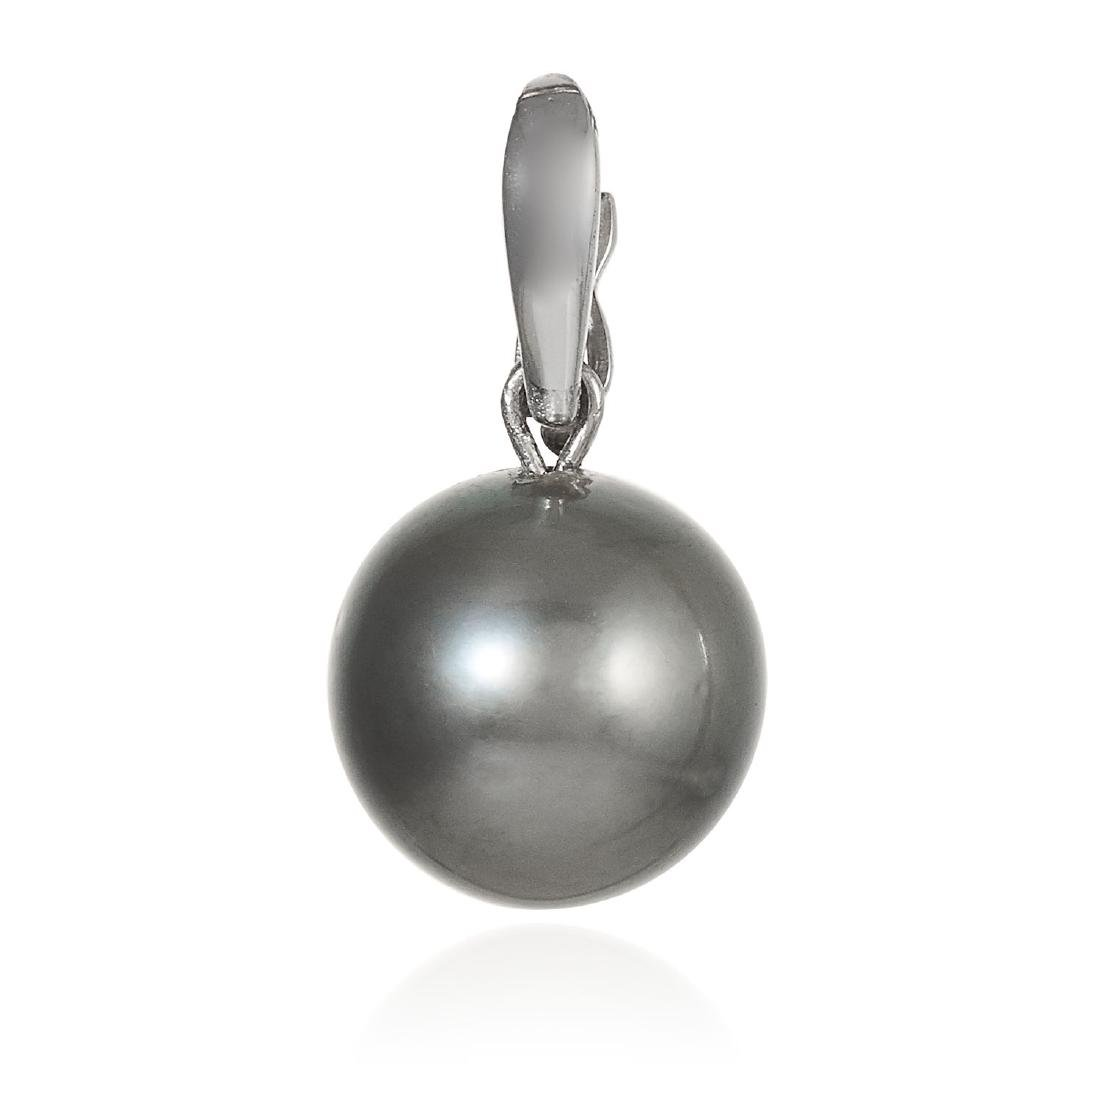 A GREY PEARL PENDANT in 18ct white gold, suspending a